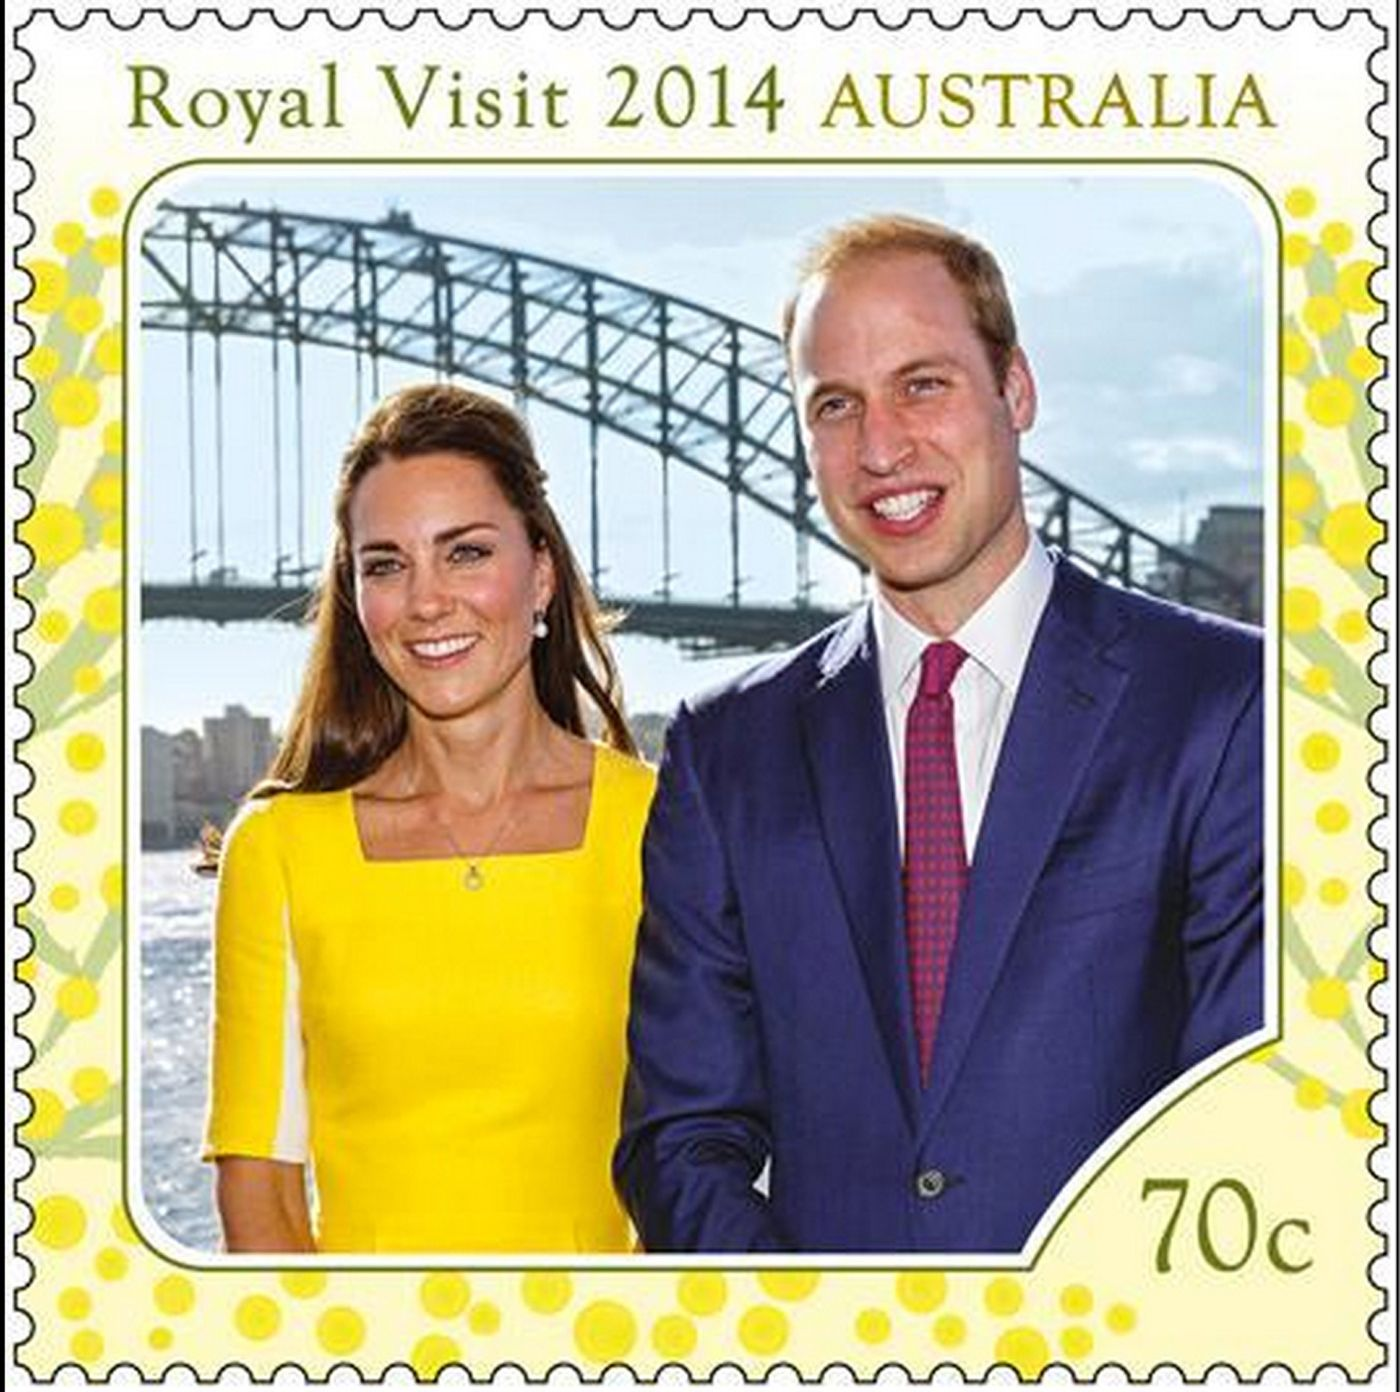 Royal_Stamp_Australia.jpg